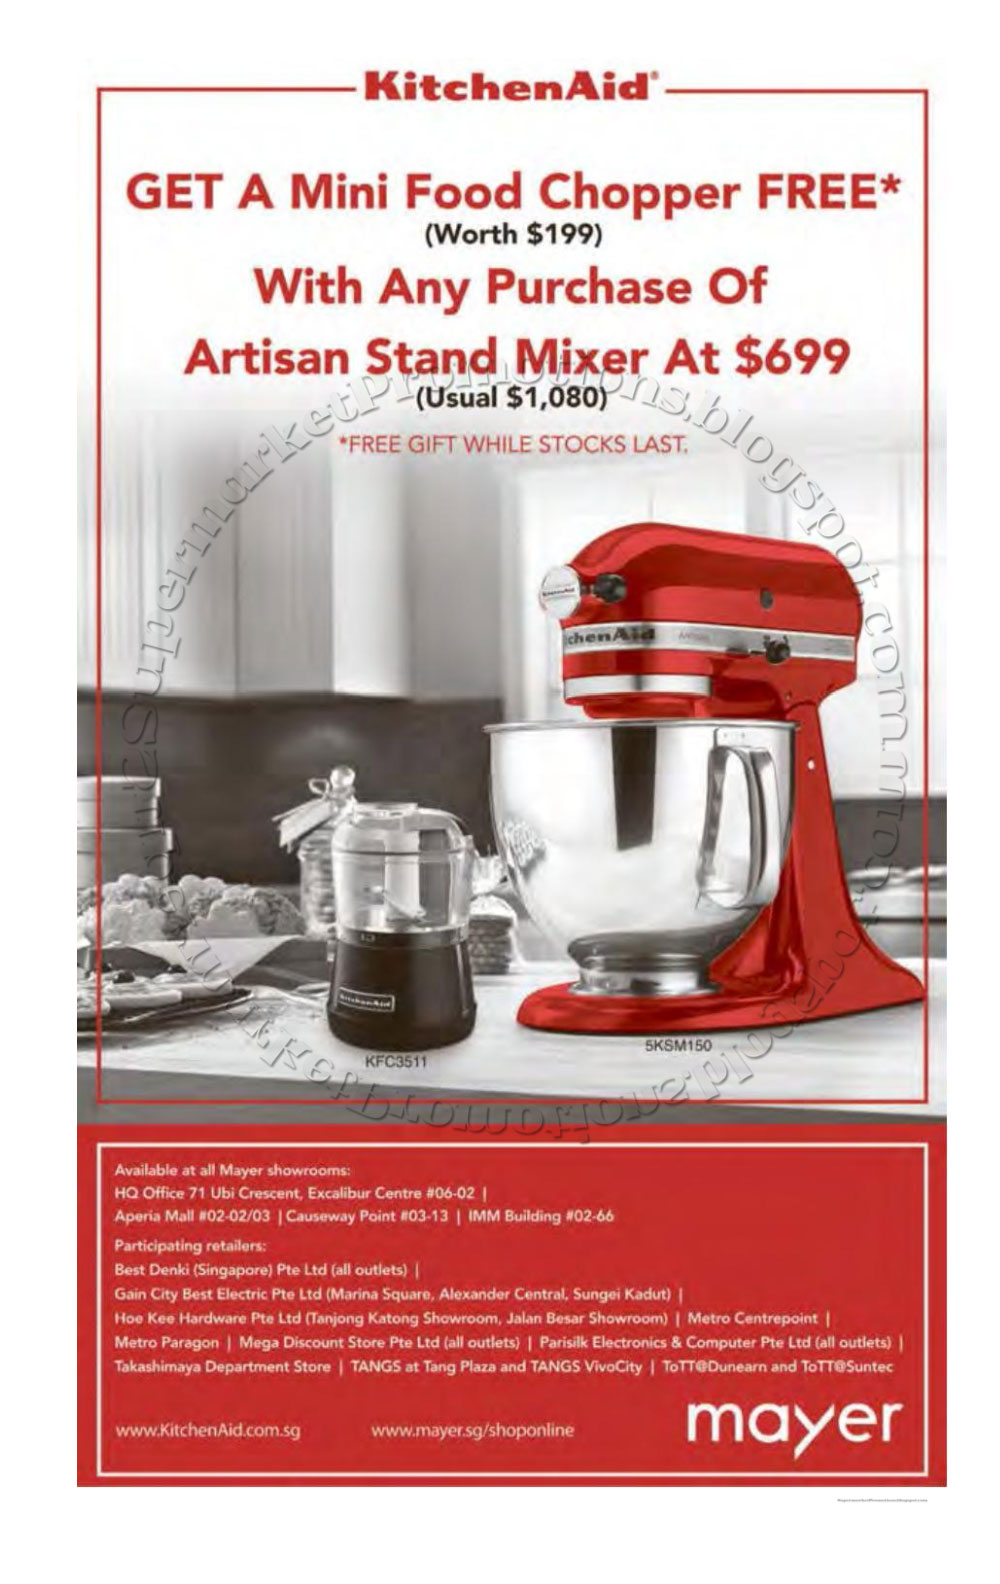 Wonderful Mayer KitchenAid Promotion 24 June 2016 Images